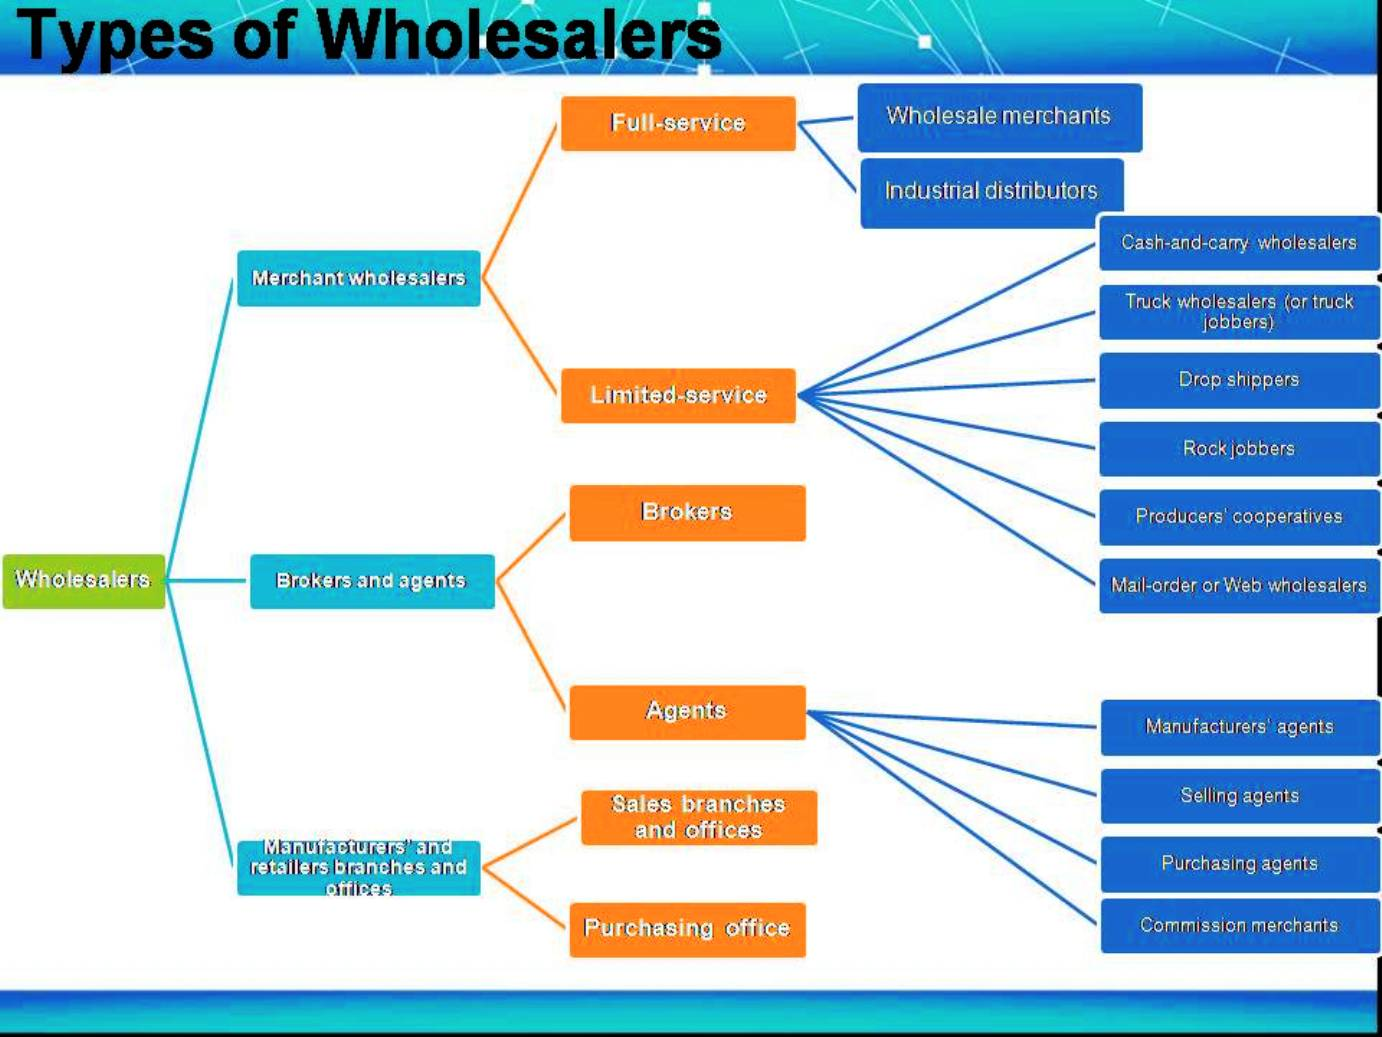 wholesaling 2 which types of wholesalers are you in marketing